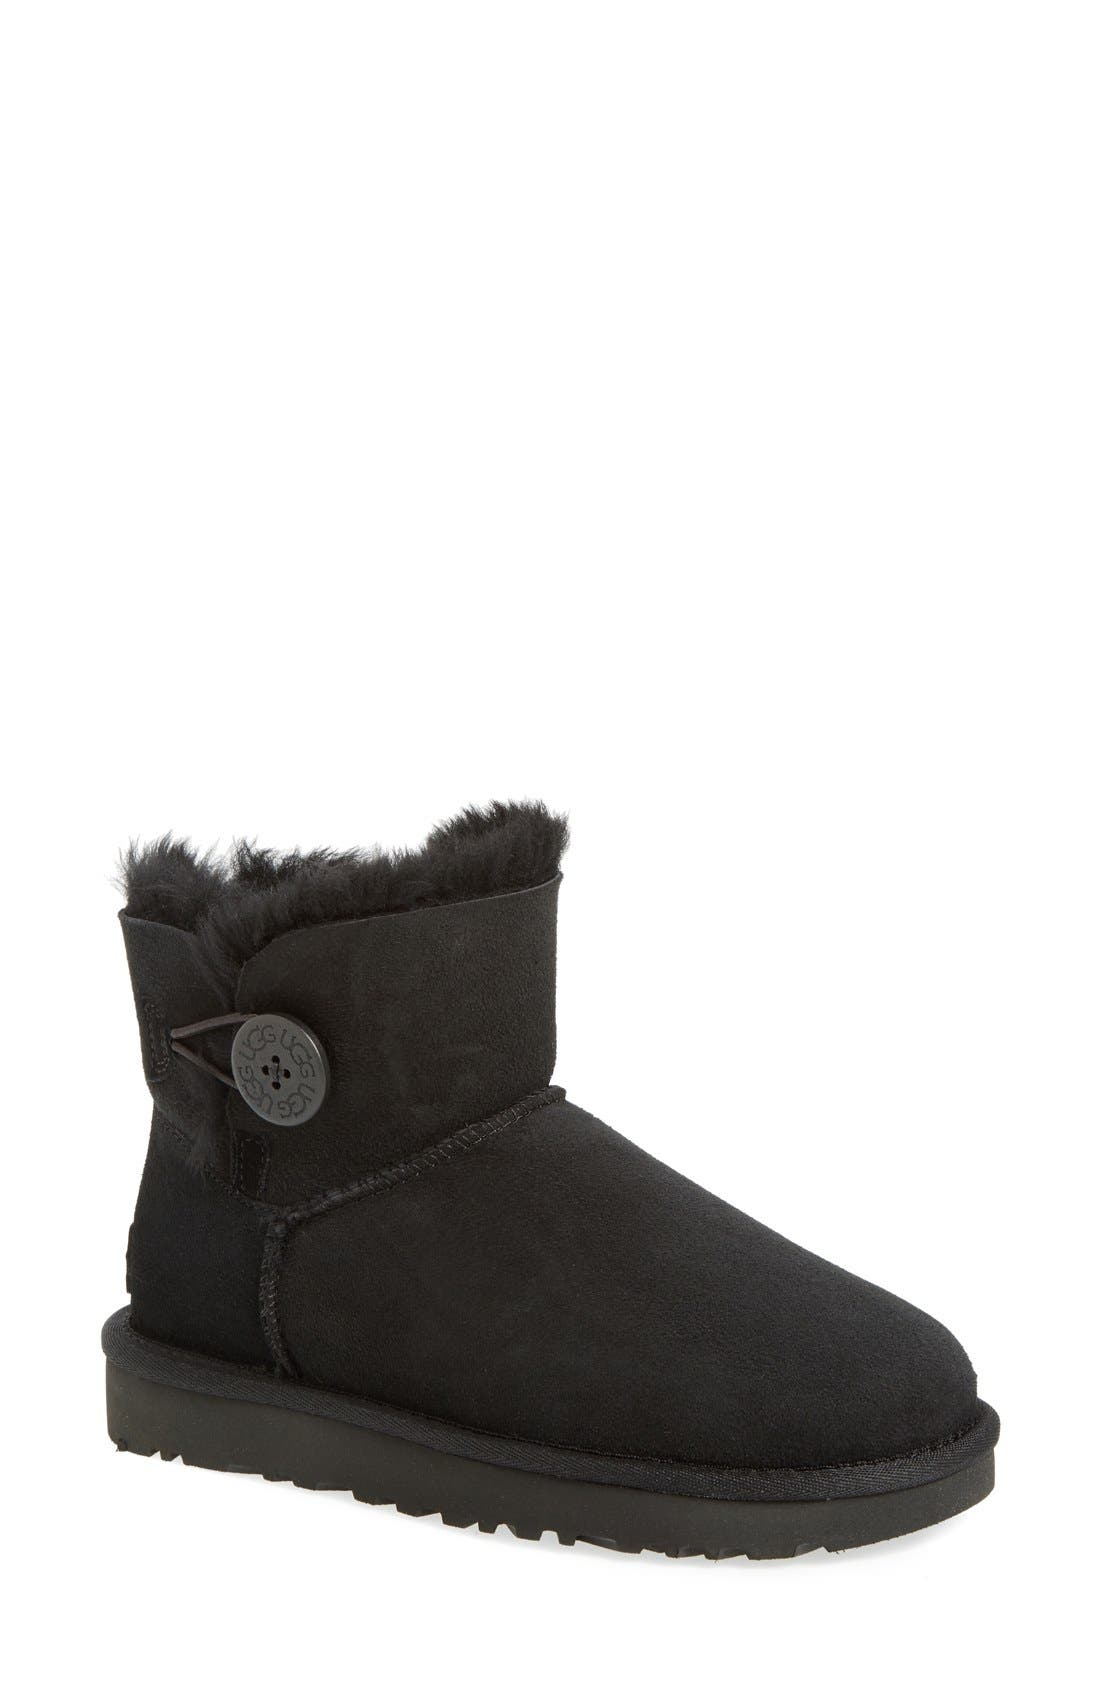 bailey button uggs at nordstrom